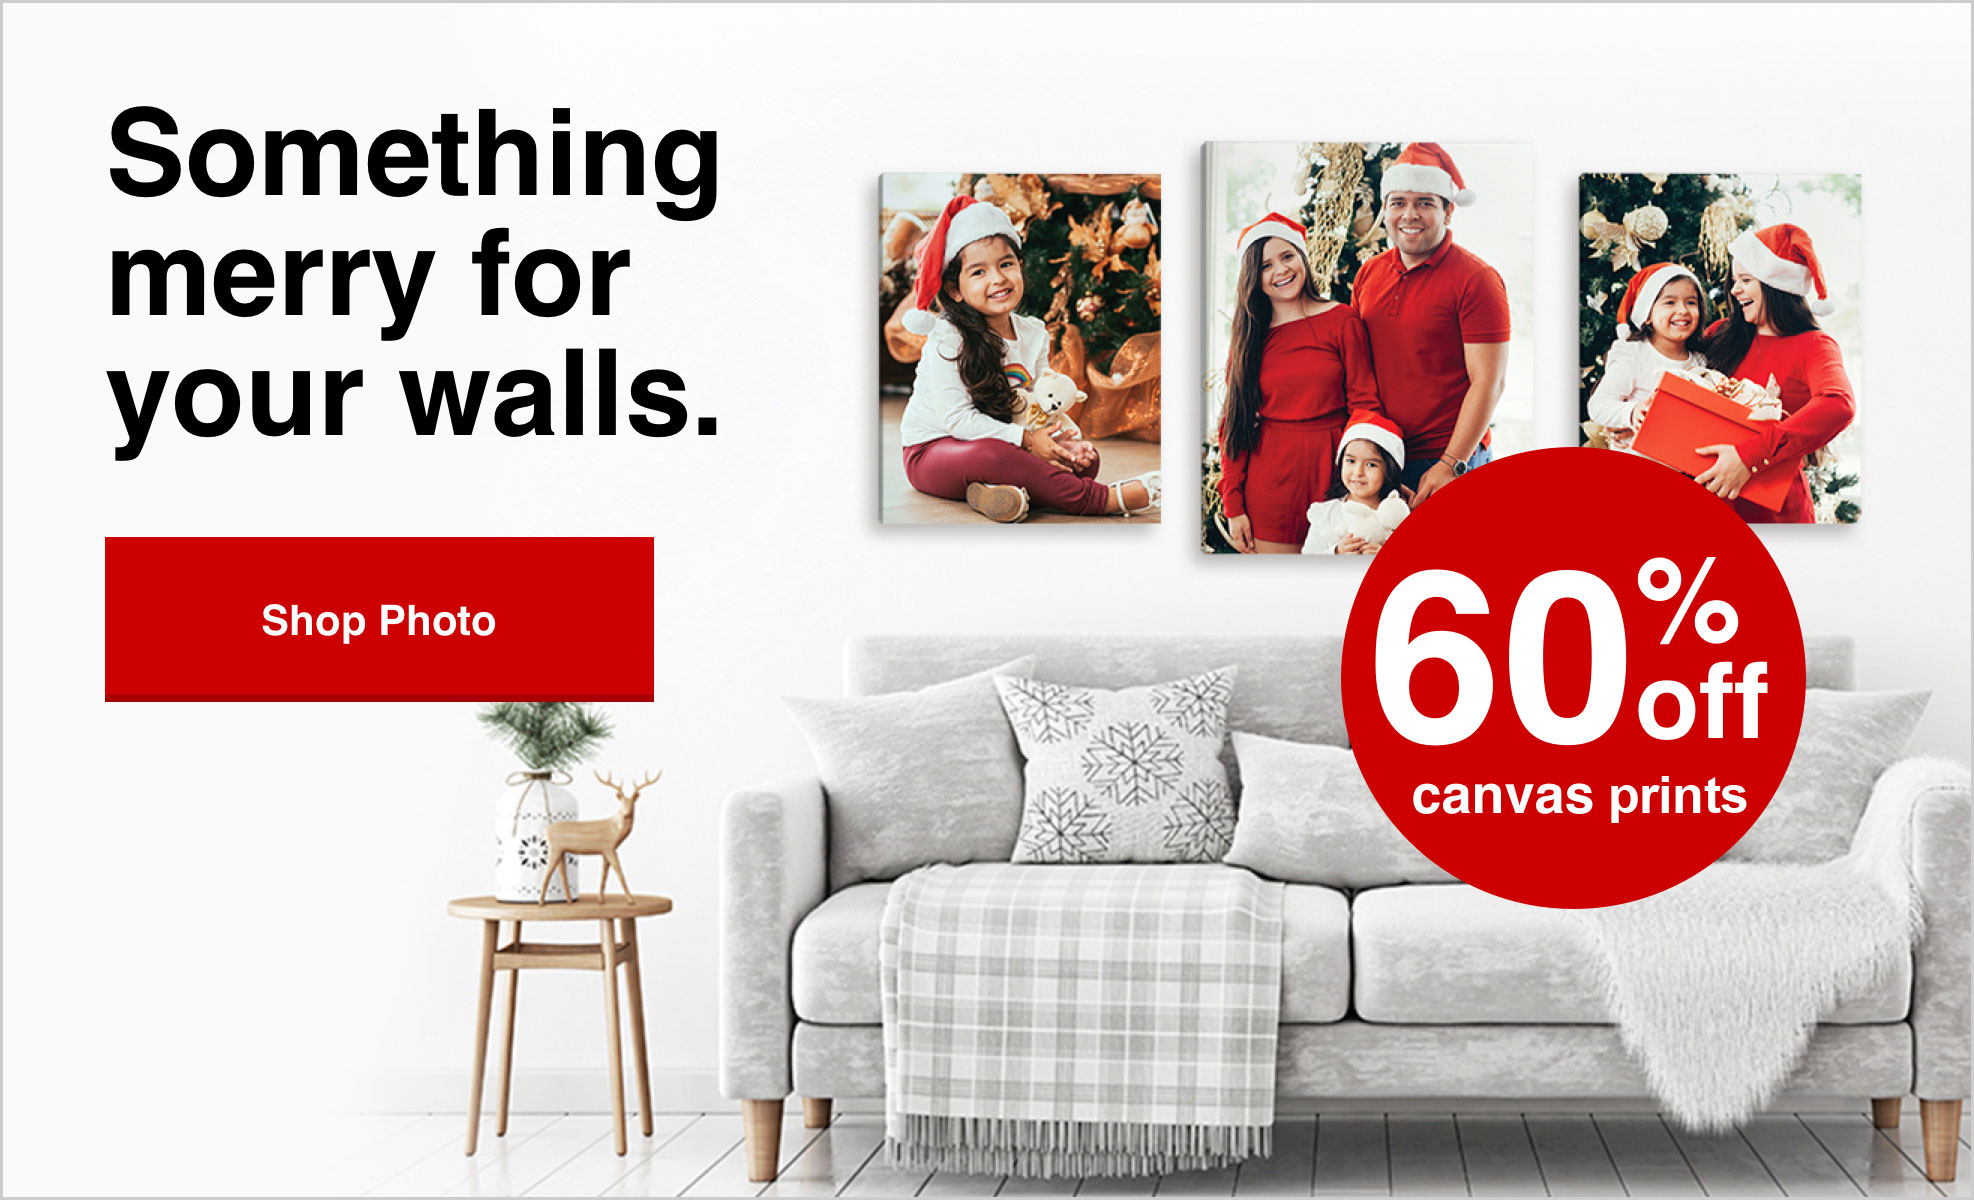 Get 60% off canvas prints with Promo Code: CPRINT60 Offer ends 11/28/20 Create now >